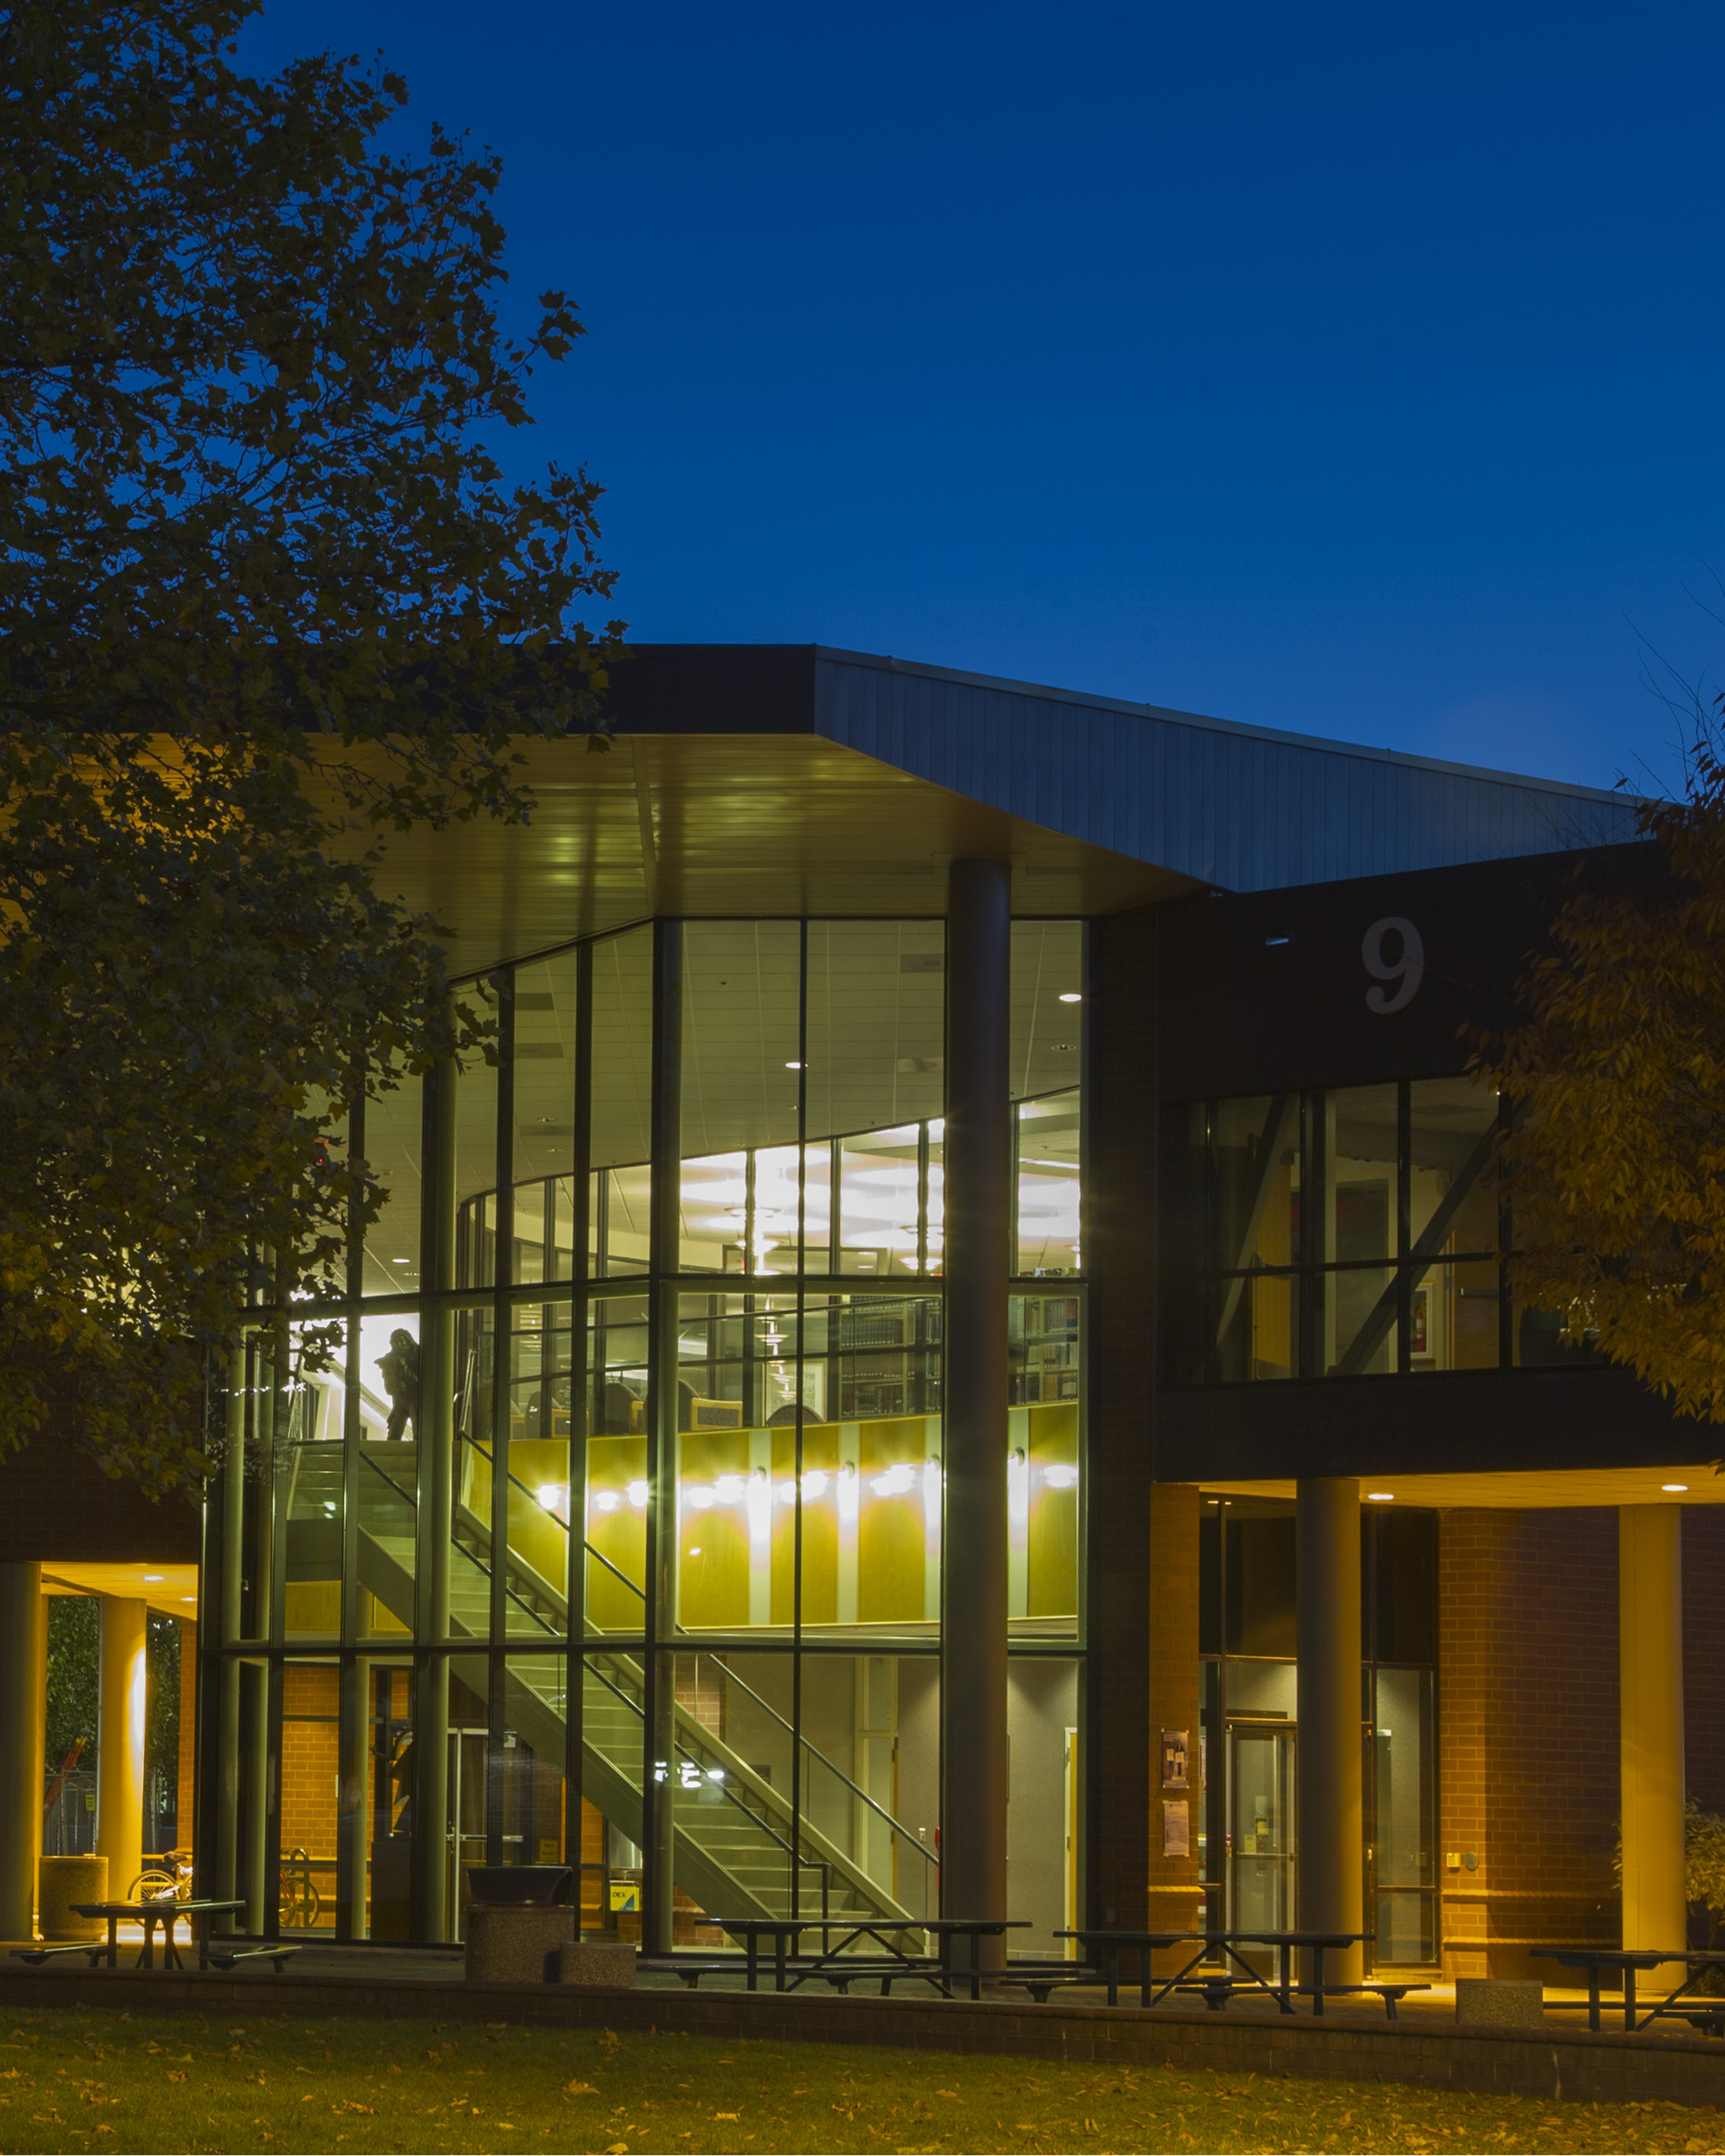 Bldg. 9, lit up at night, is a prime example of Chemeketa maintaining beautiful campus grounds.